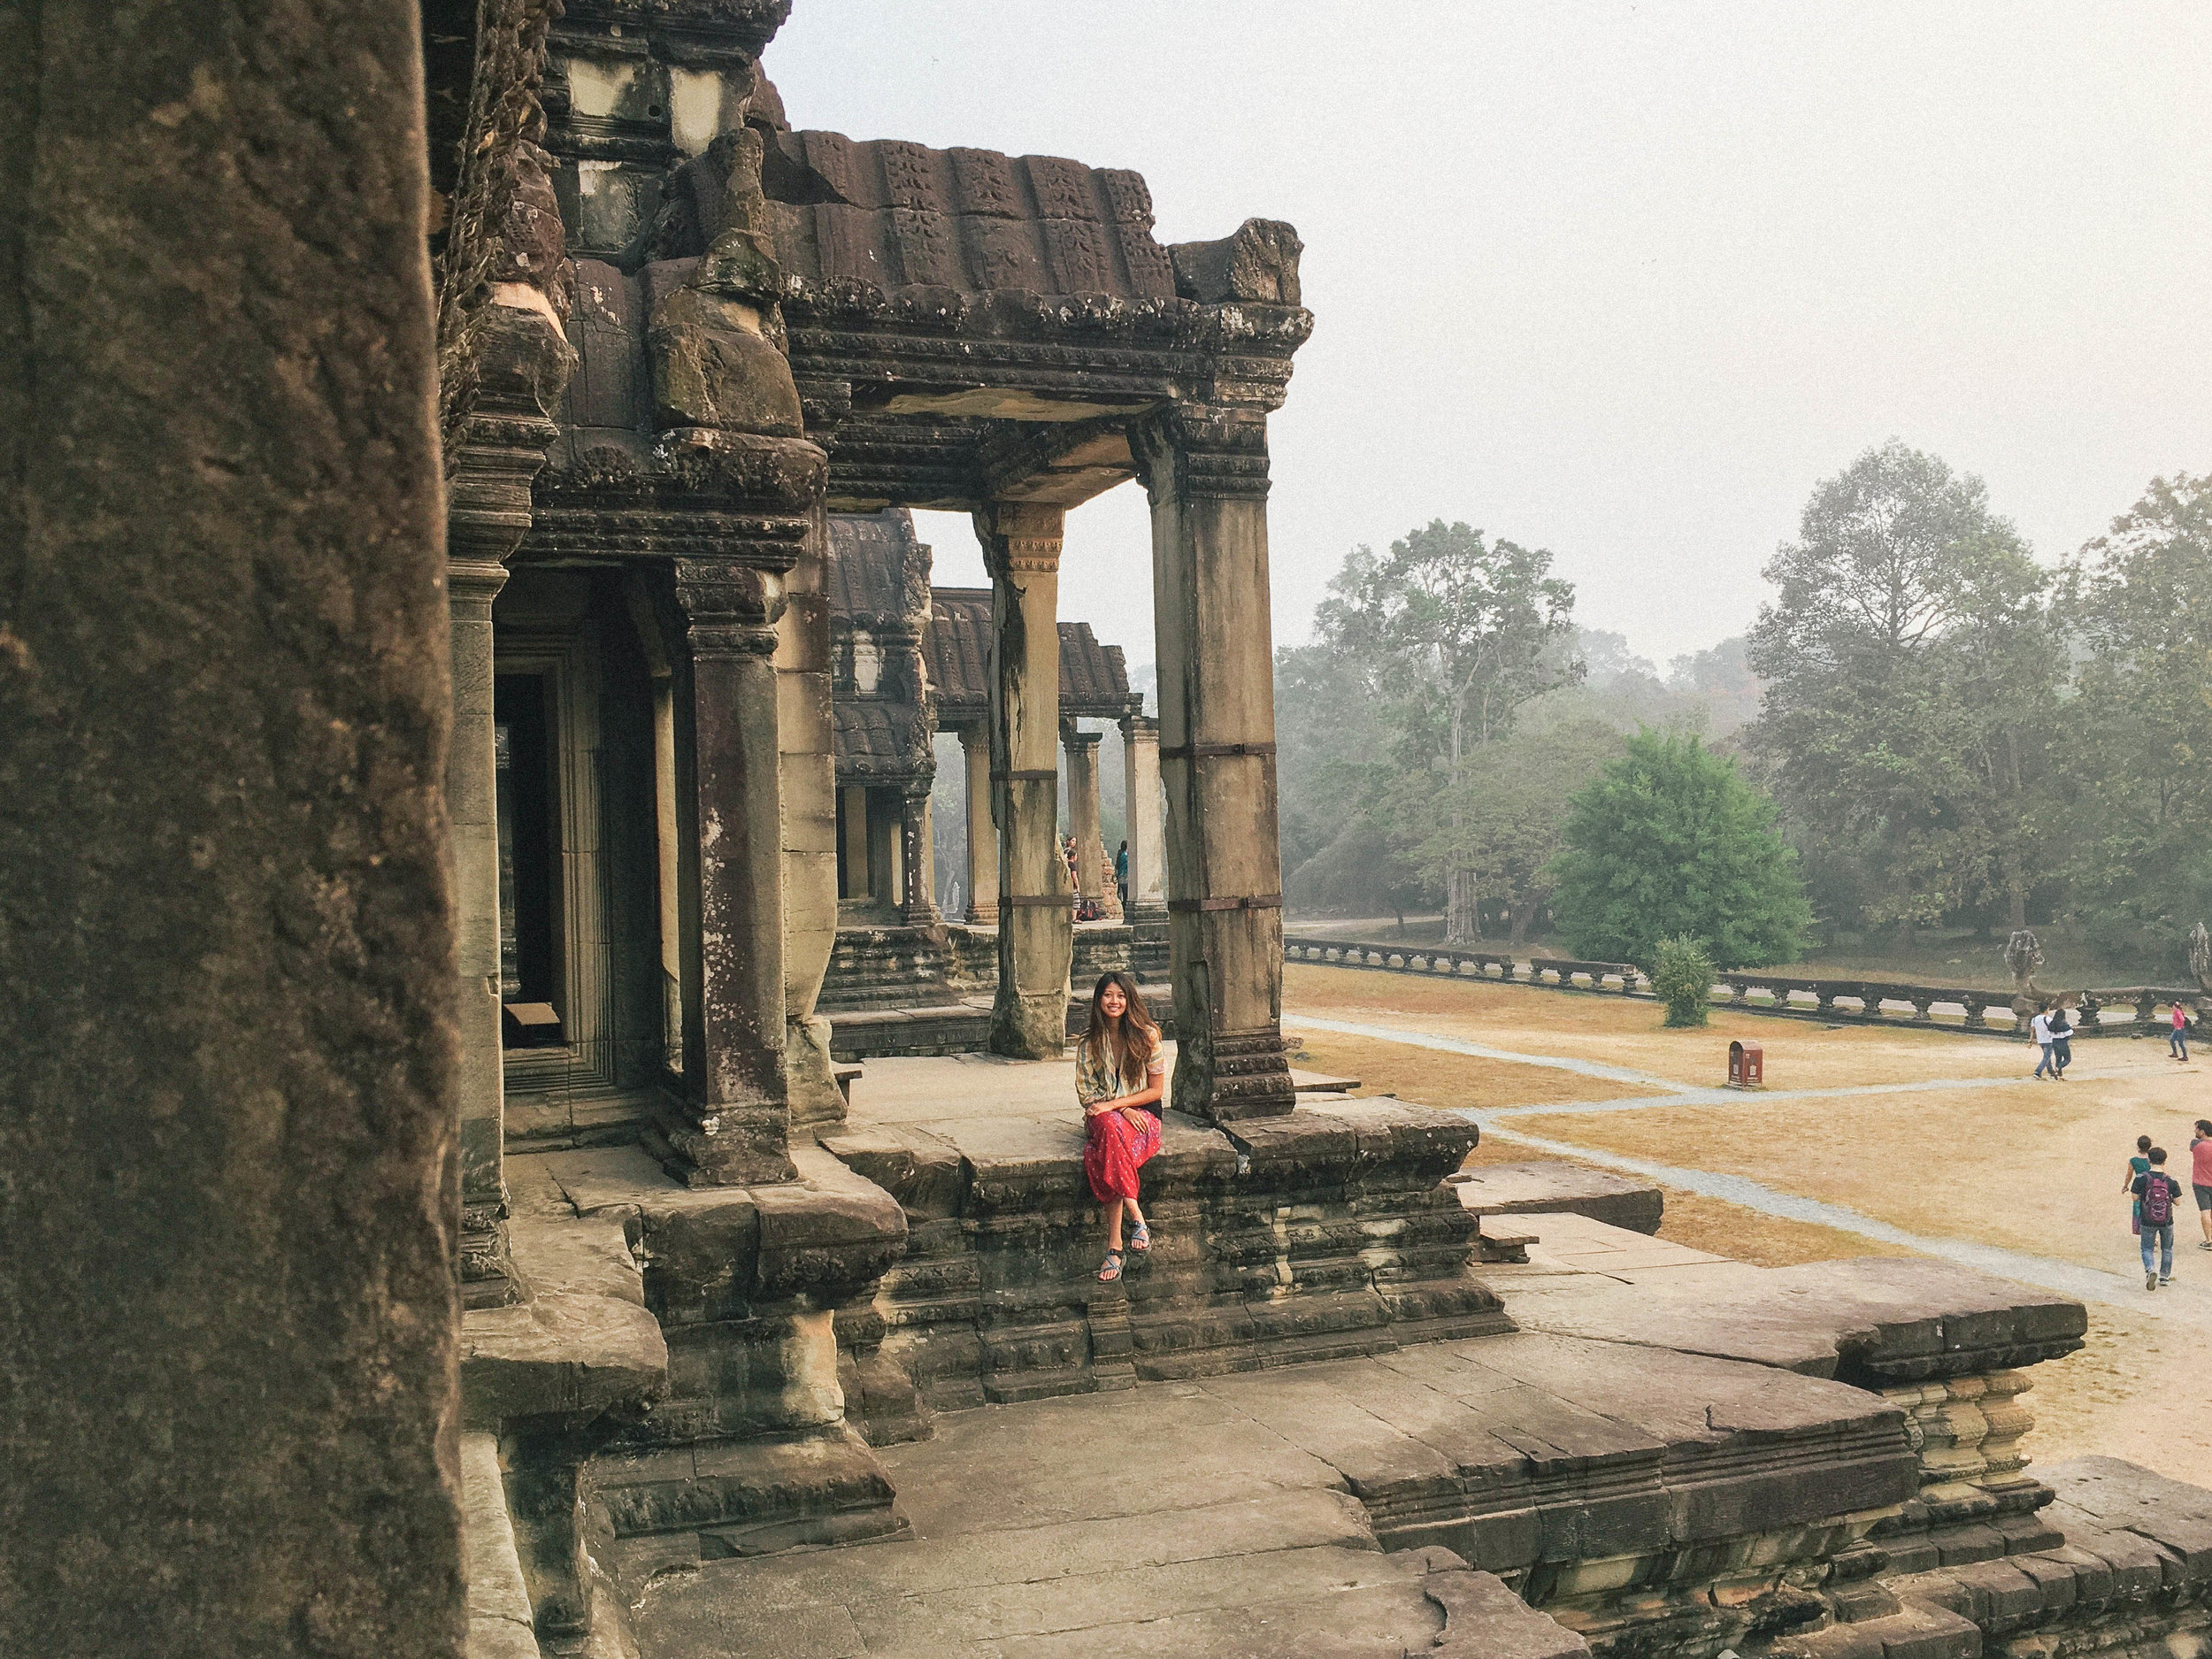 The very famous Angkor Wat in Cambodia.